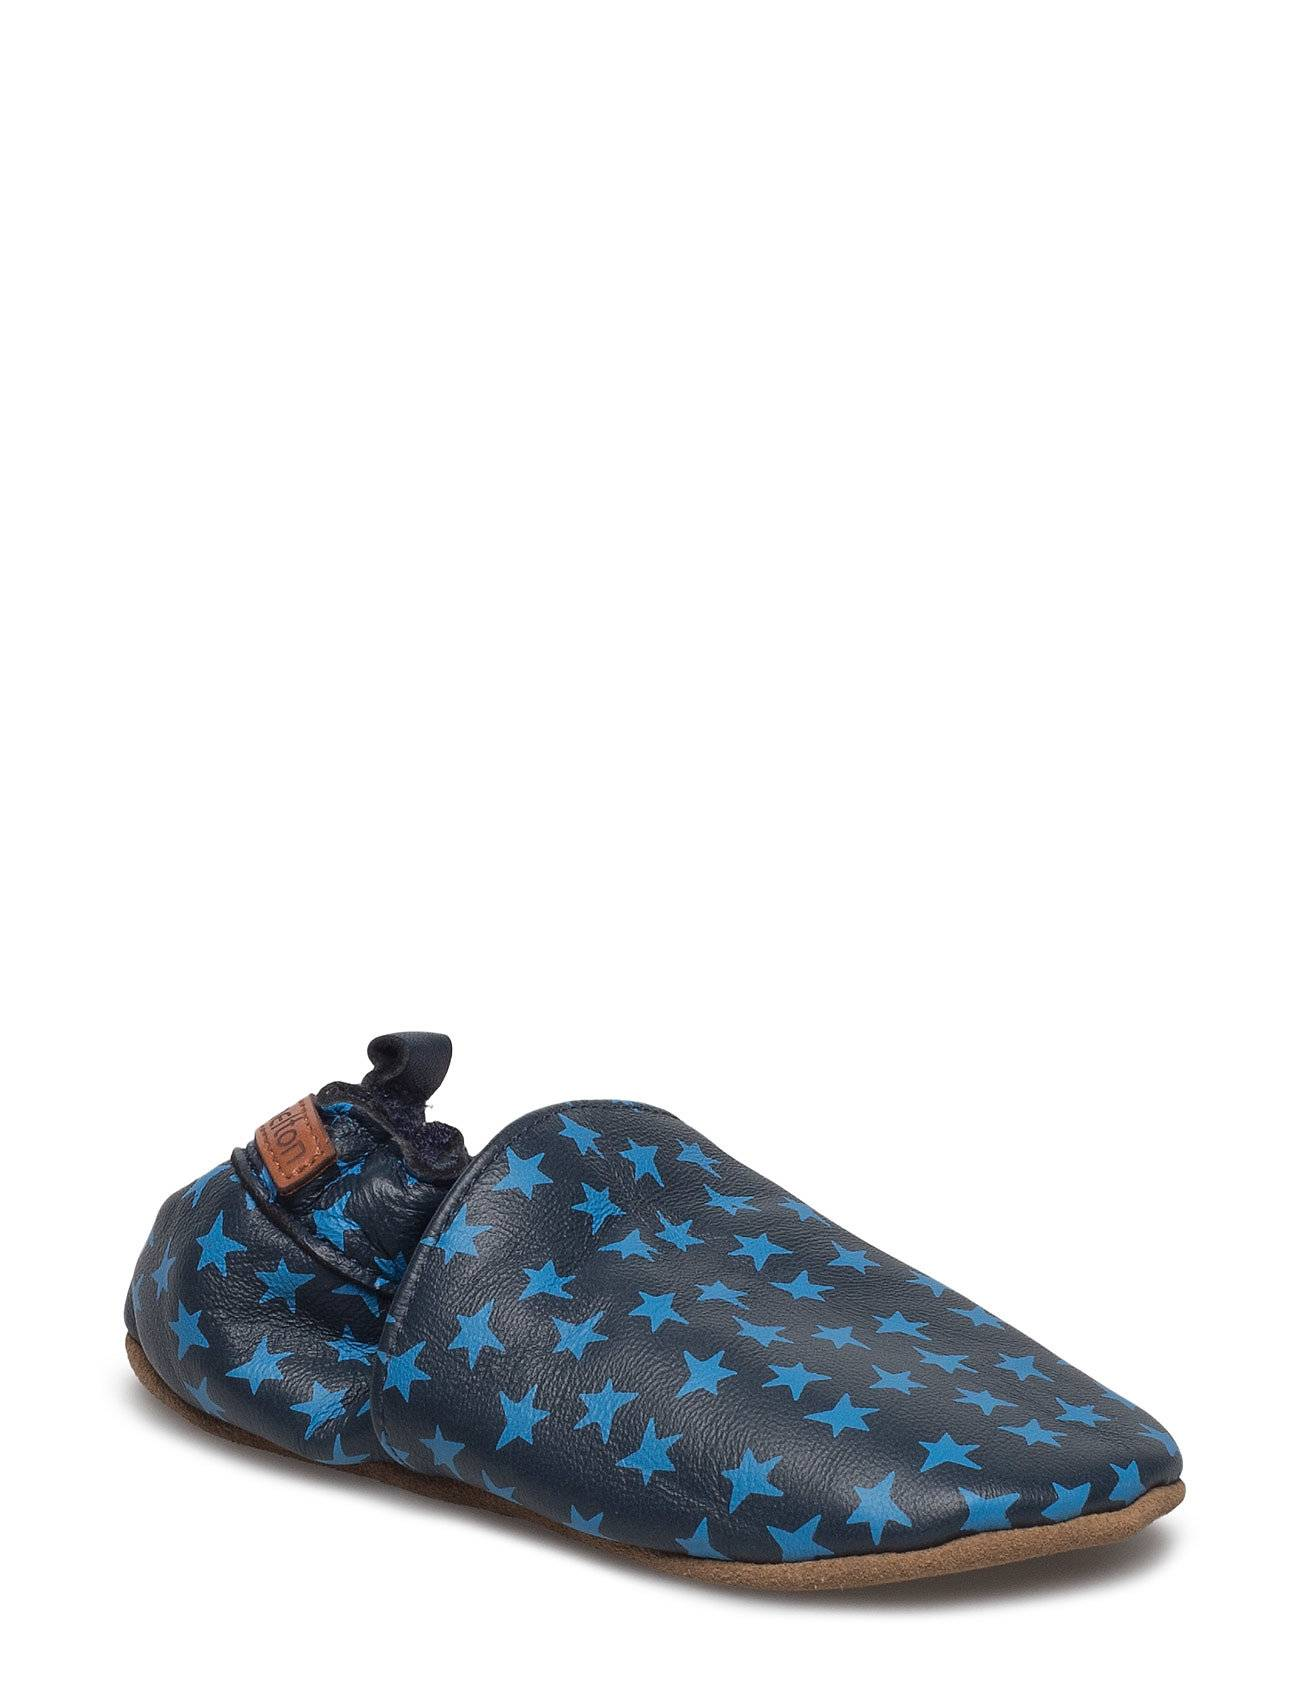 Melton Leather Shoe - Loafer With Print